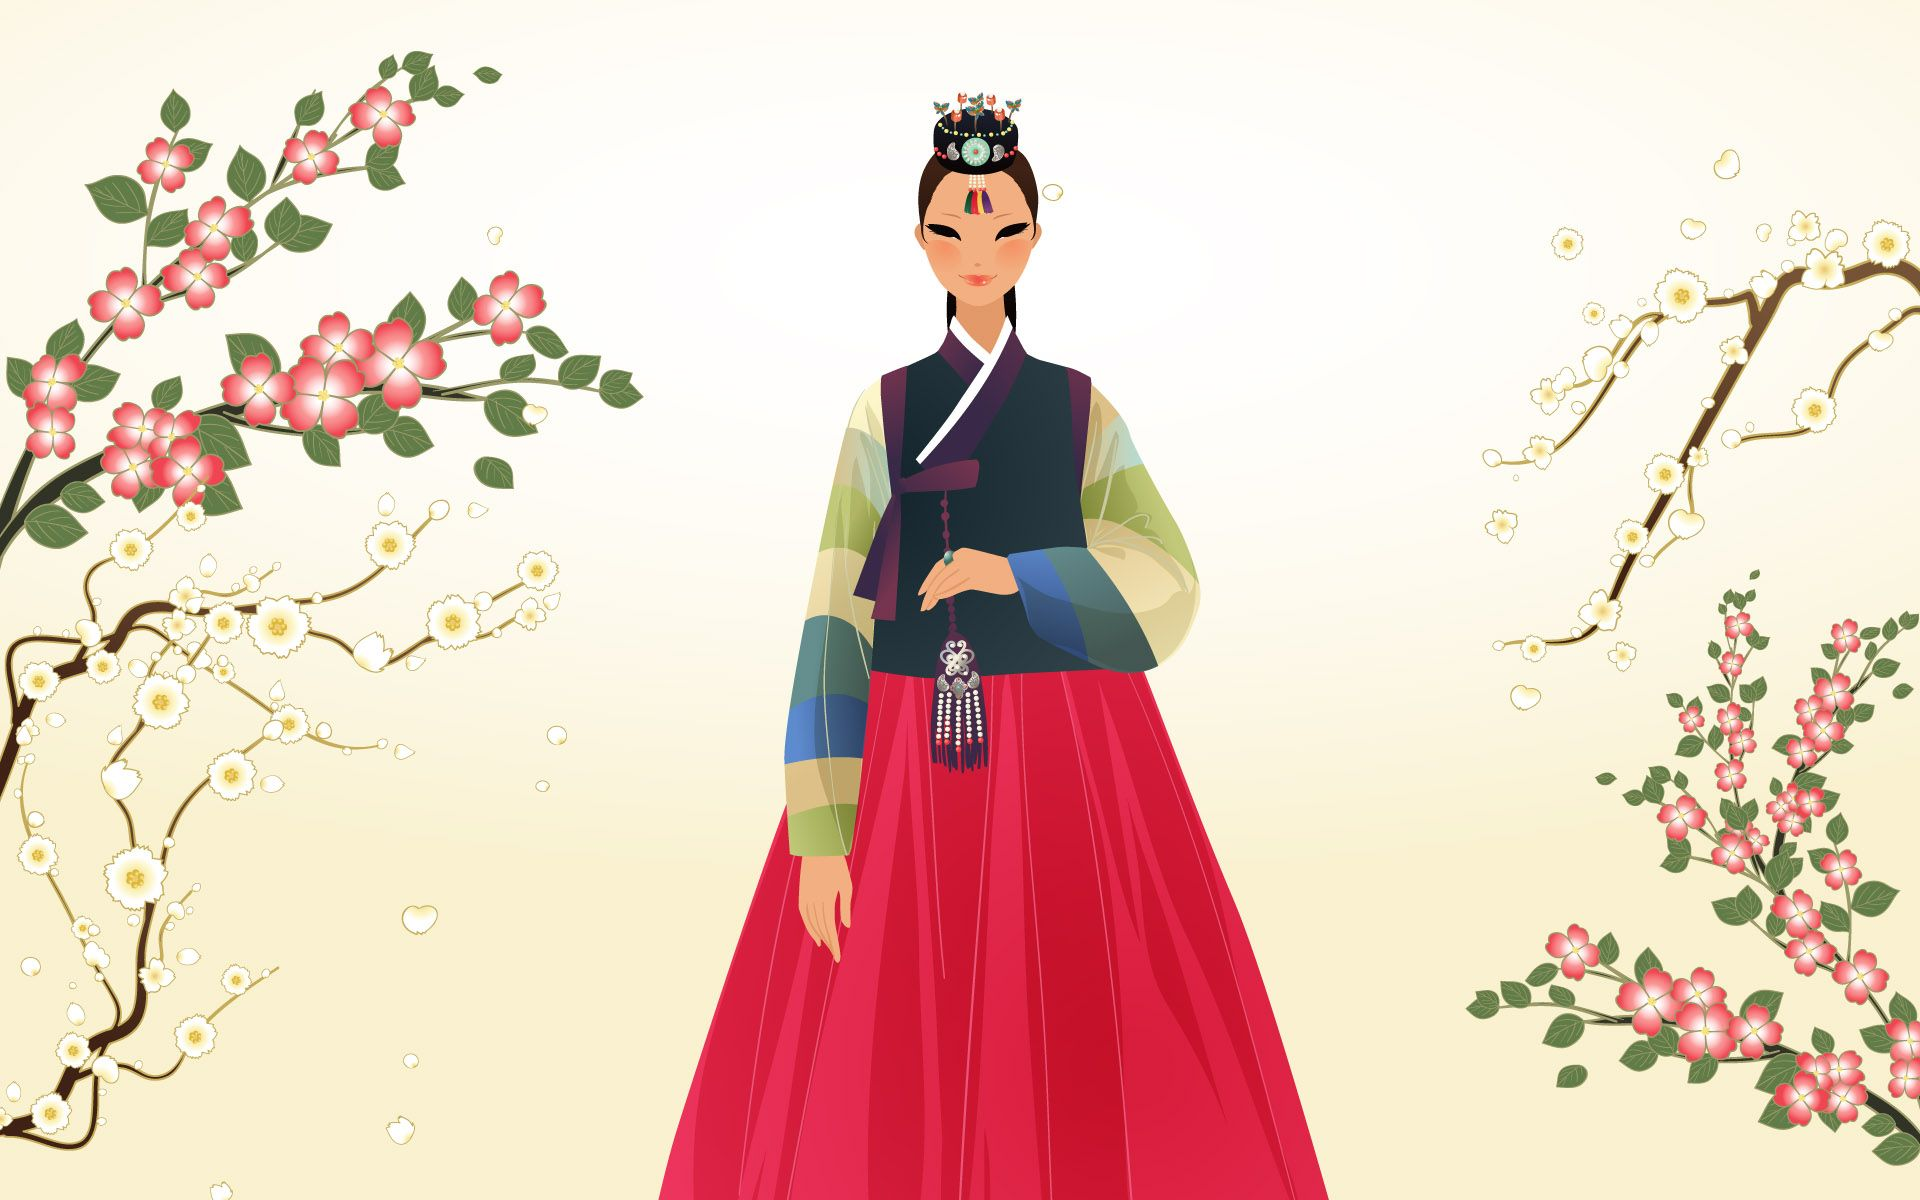 Wallpapers korean index of images art traditional for New fashion wallpaper